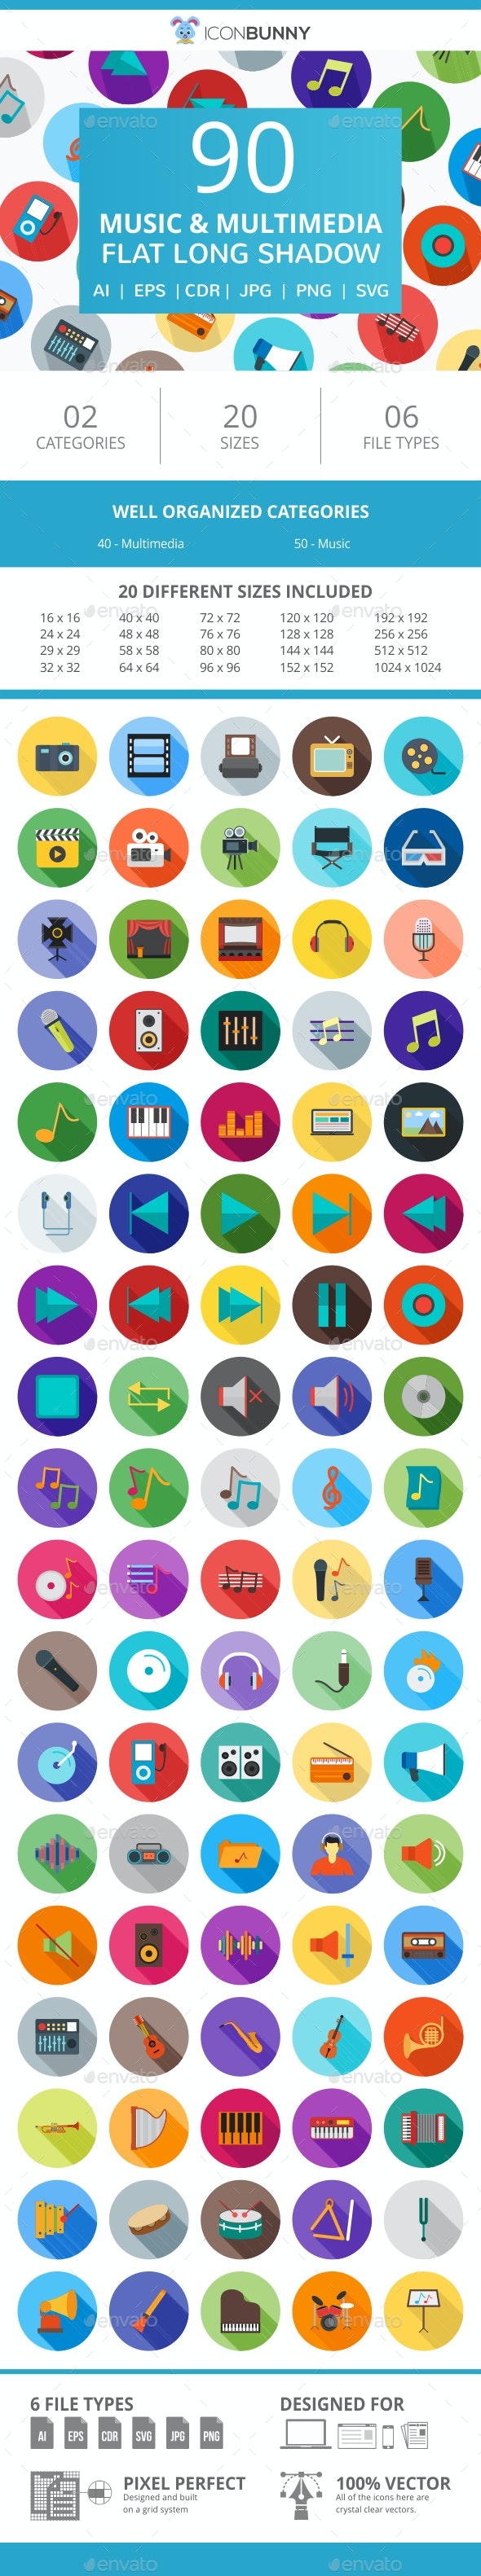 90 Music & Multimedia Flat Long Shadow Icons - Icons